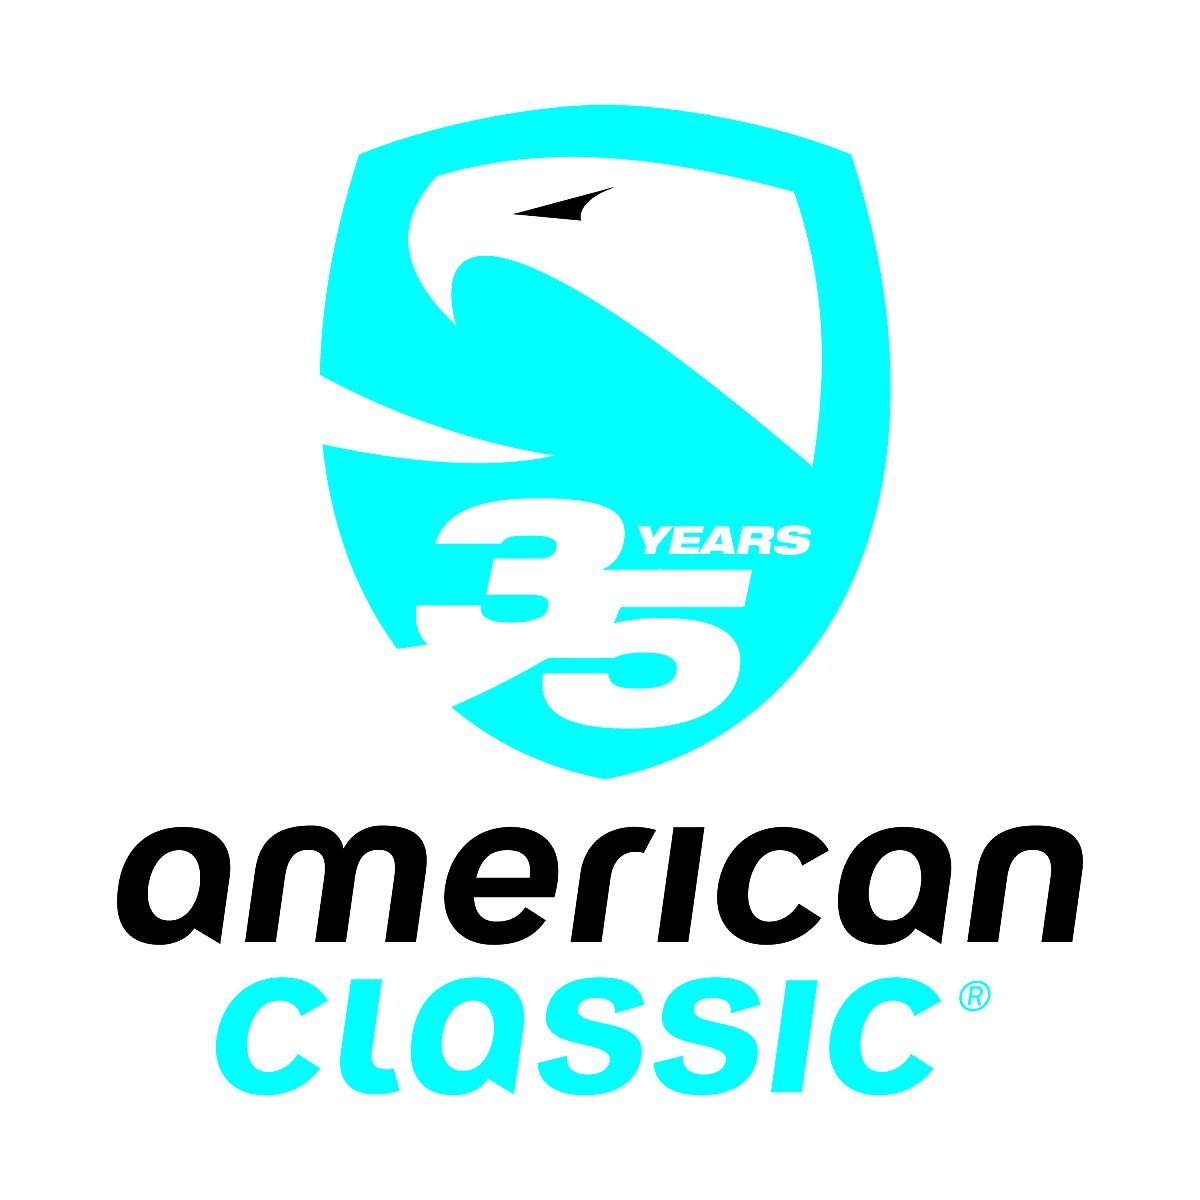 American classic celebrates 35th anniversary plans party for American classic logo